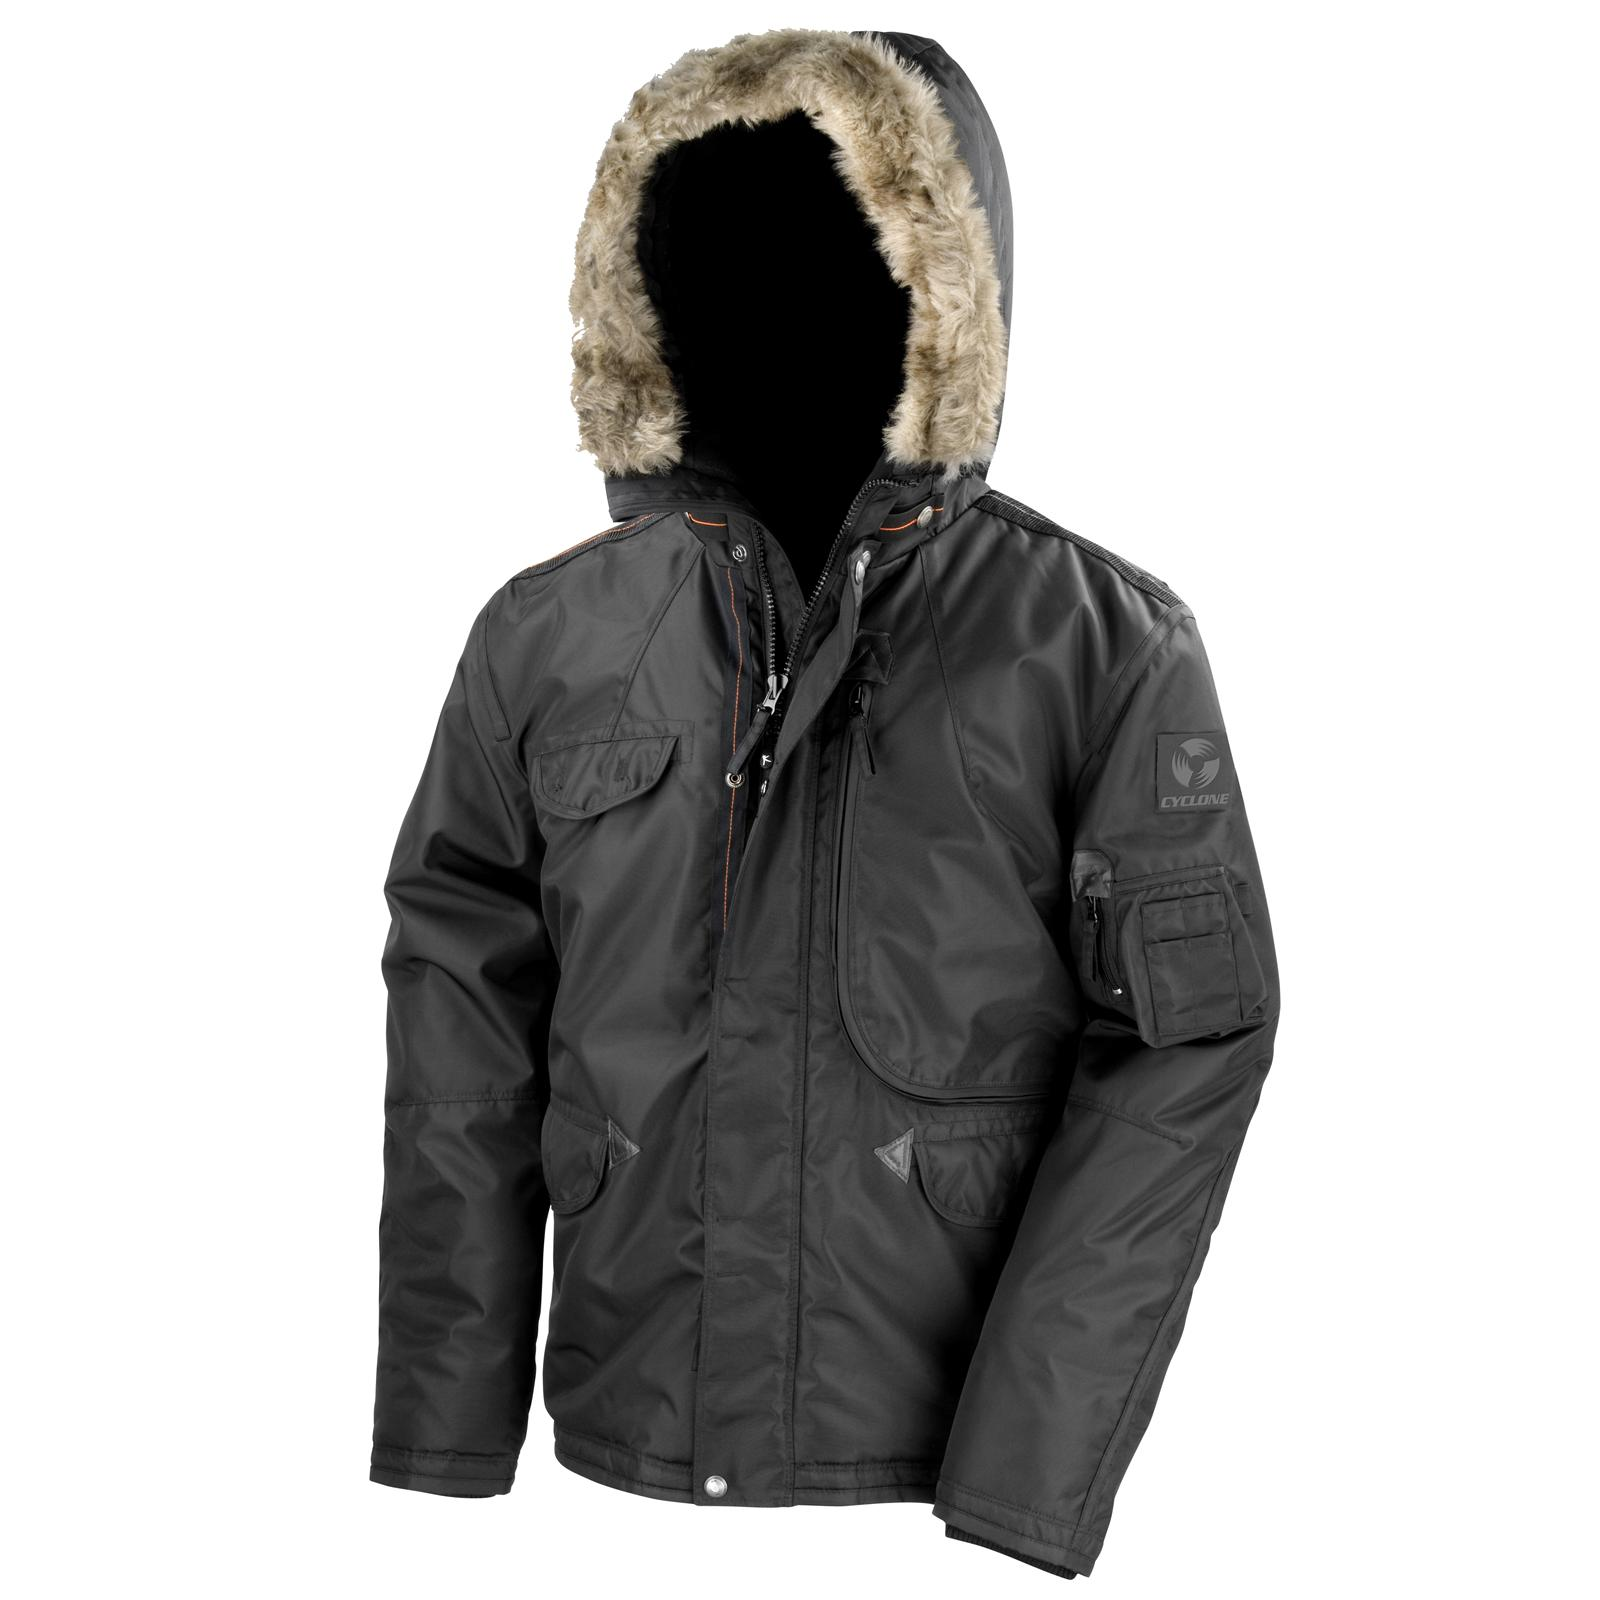 5c4bcf55a0fe New RESULT Mens Urban Outdoor Warm Ultimate Cyclone Parka Jacket ...